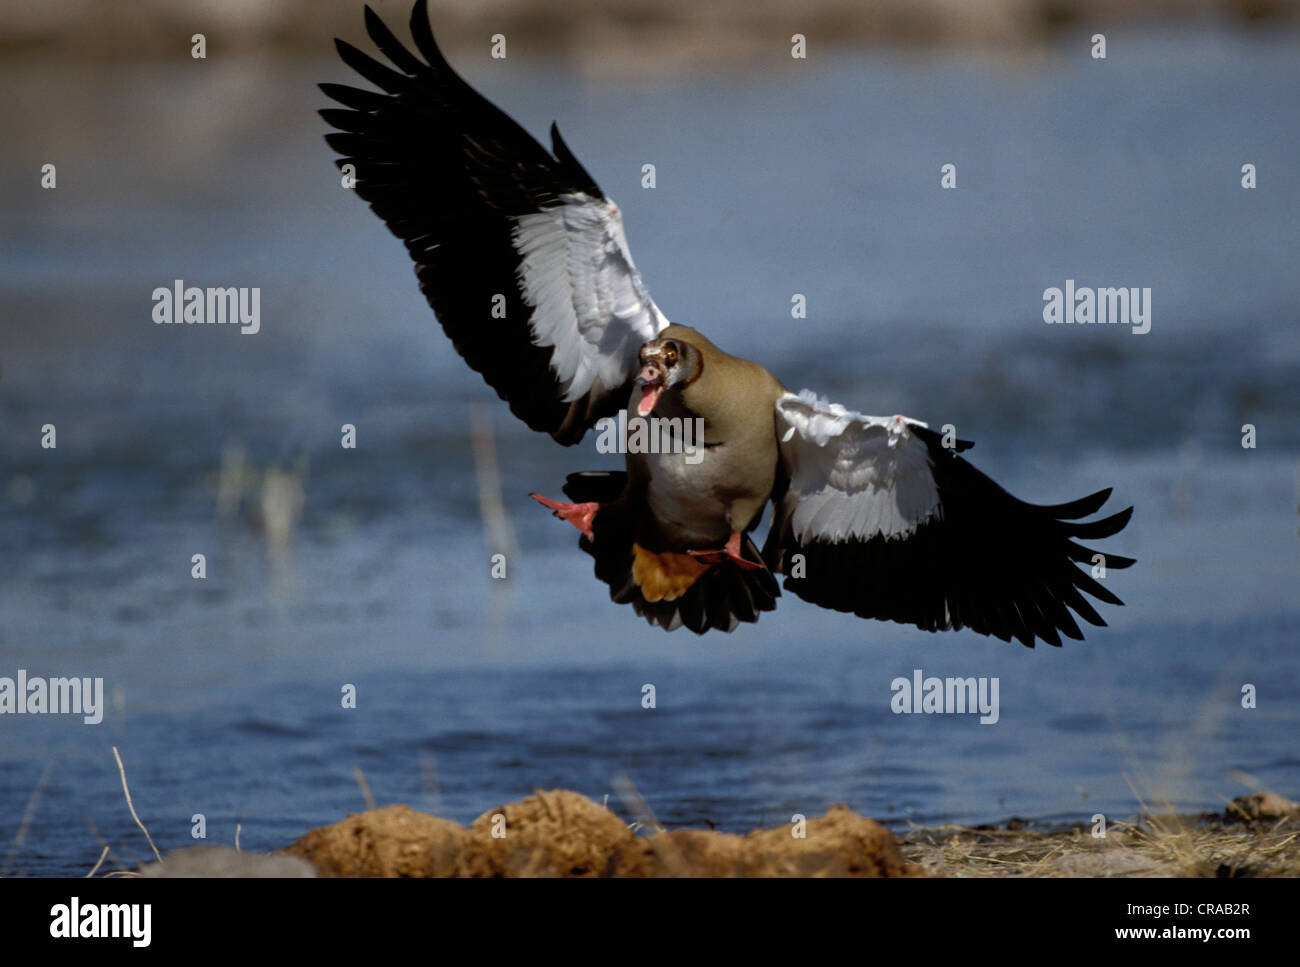 Egyptian Goose (Alopochen aegyptiacus), threat display, Etosha National Park, Namibia, Africa - Stock Image